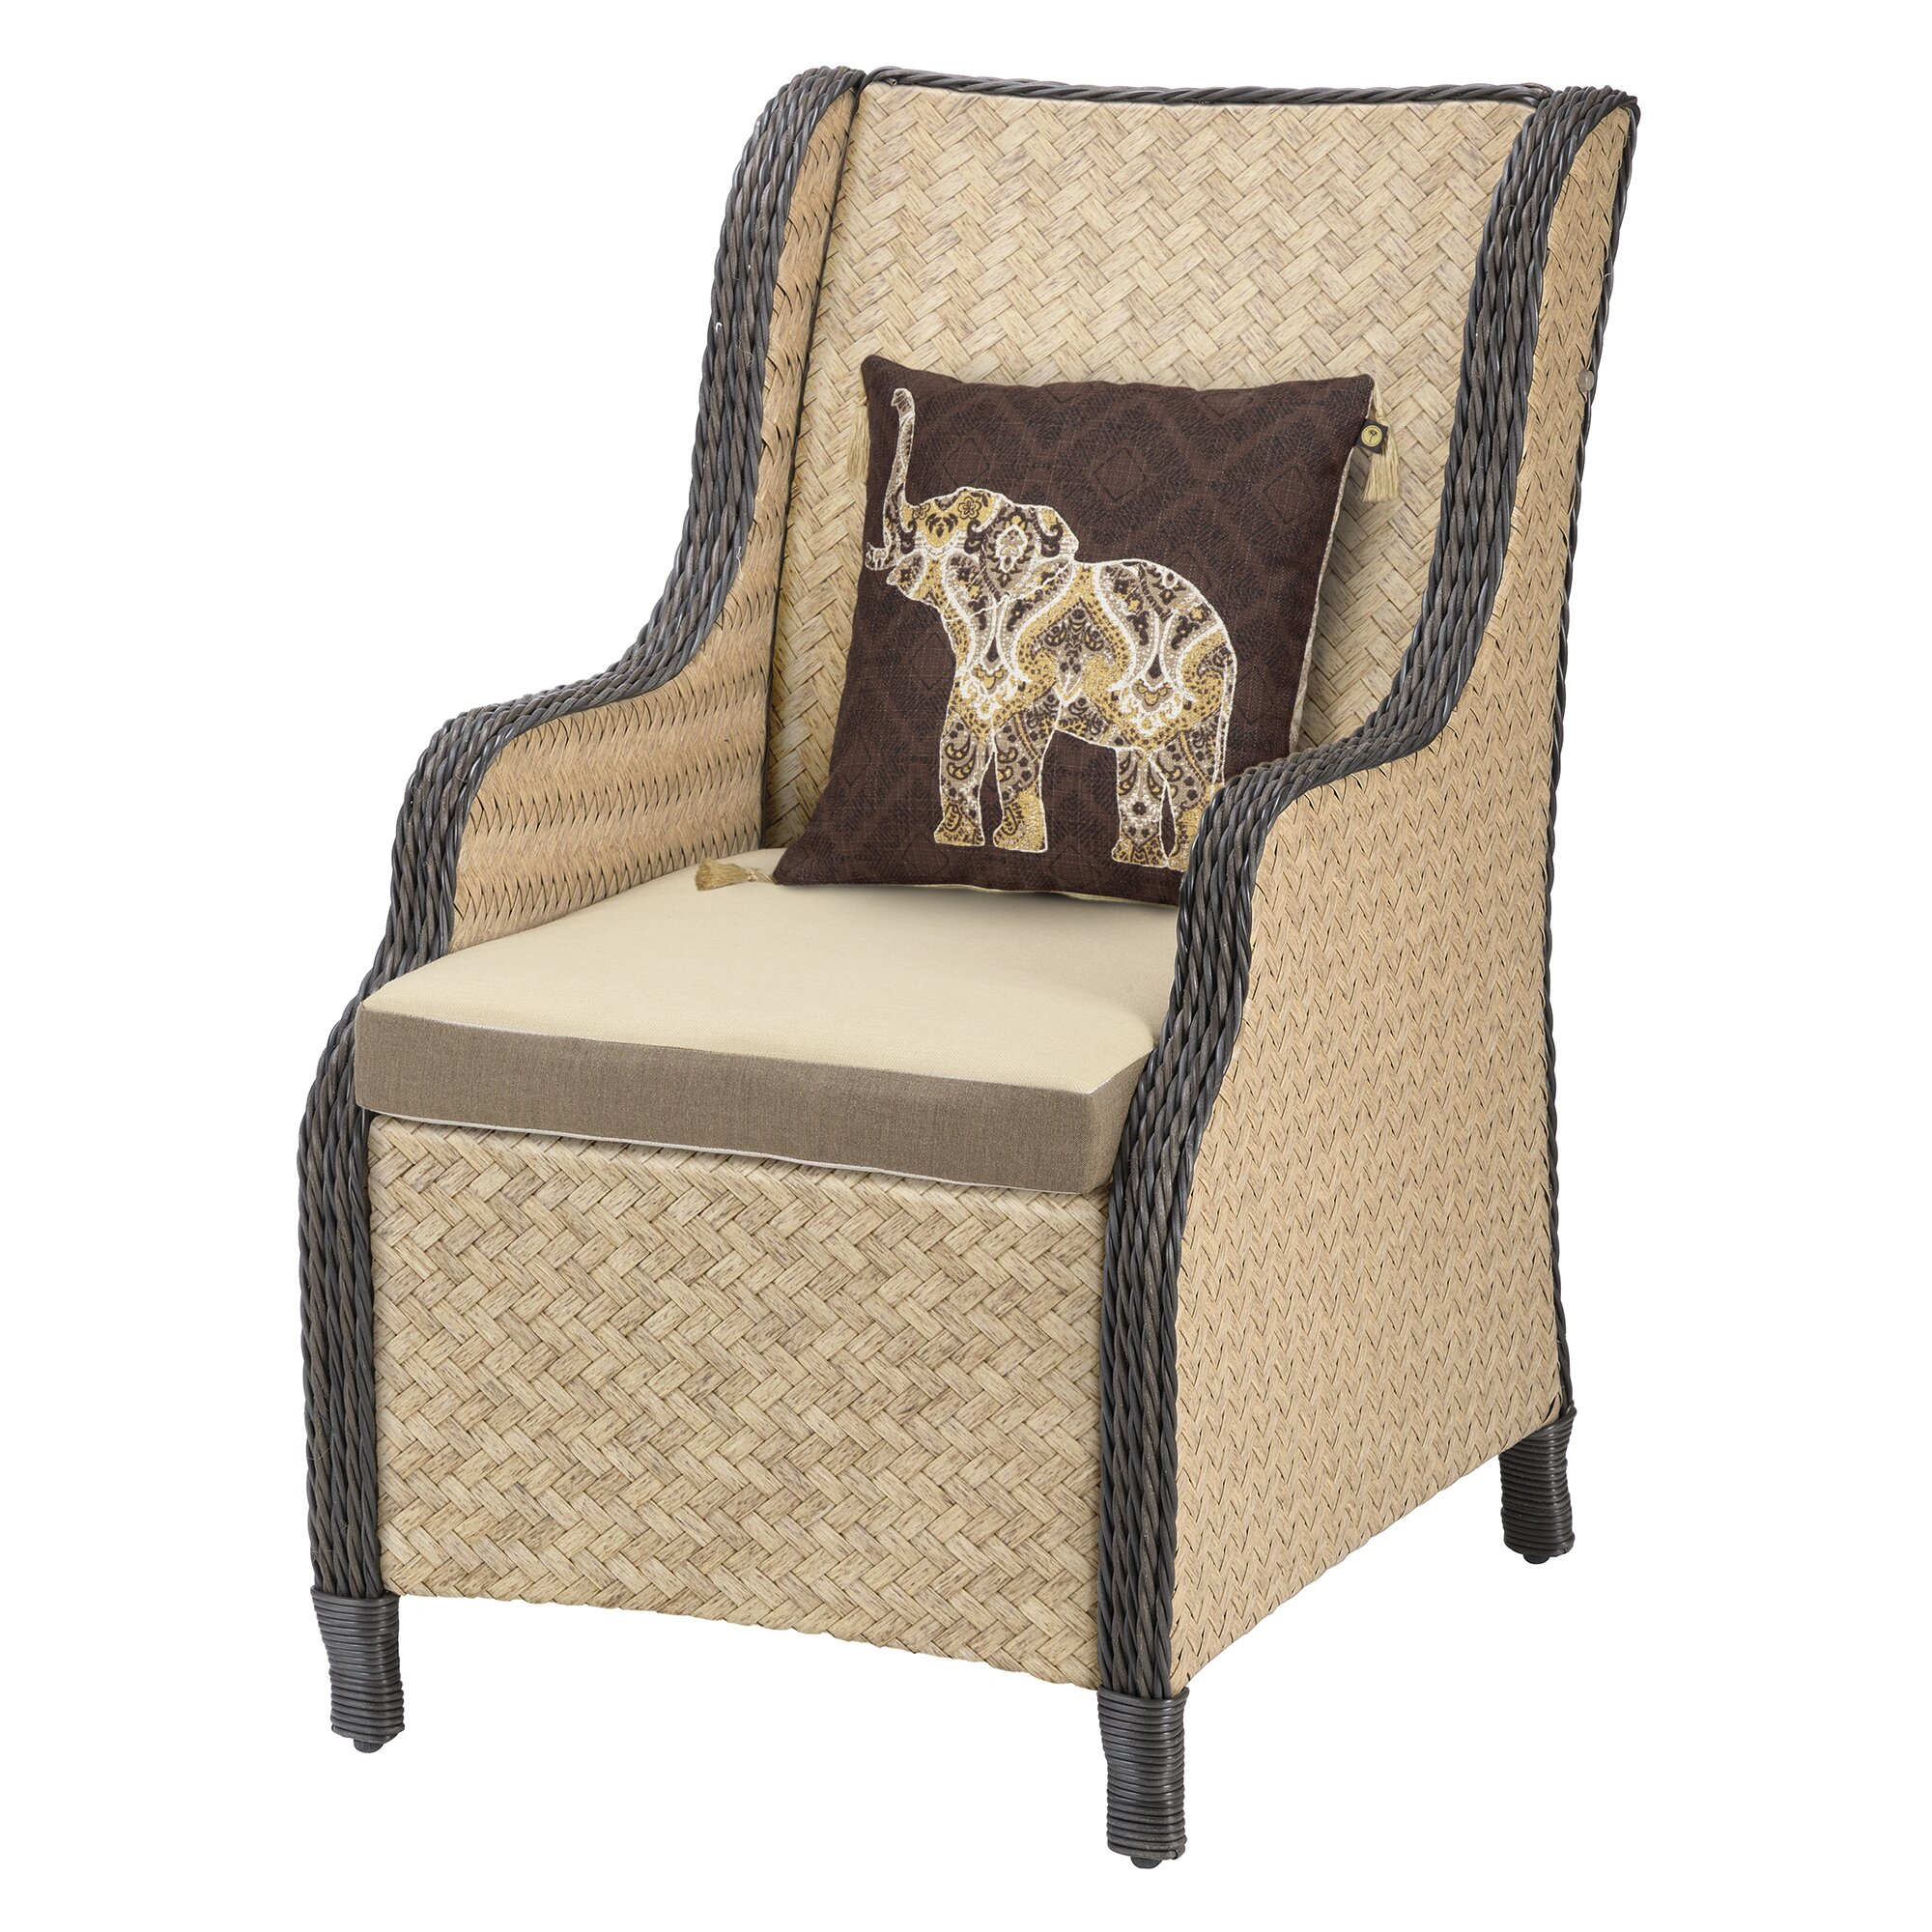 Hanalei Arm Chair